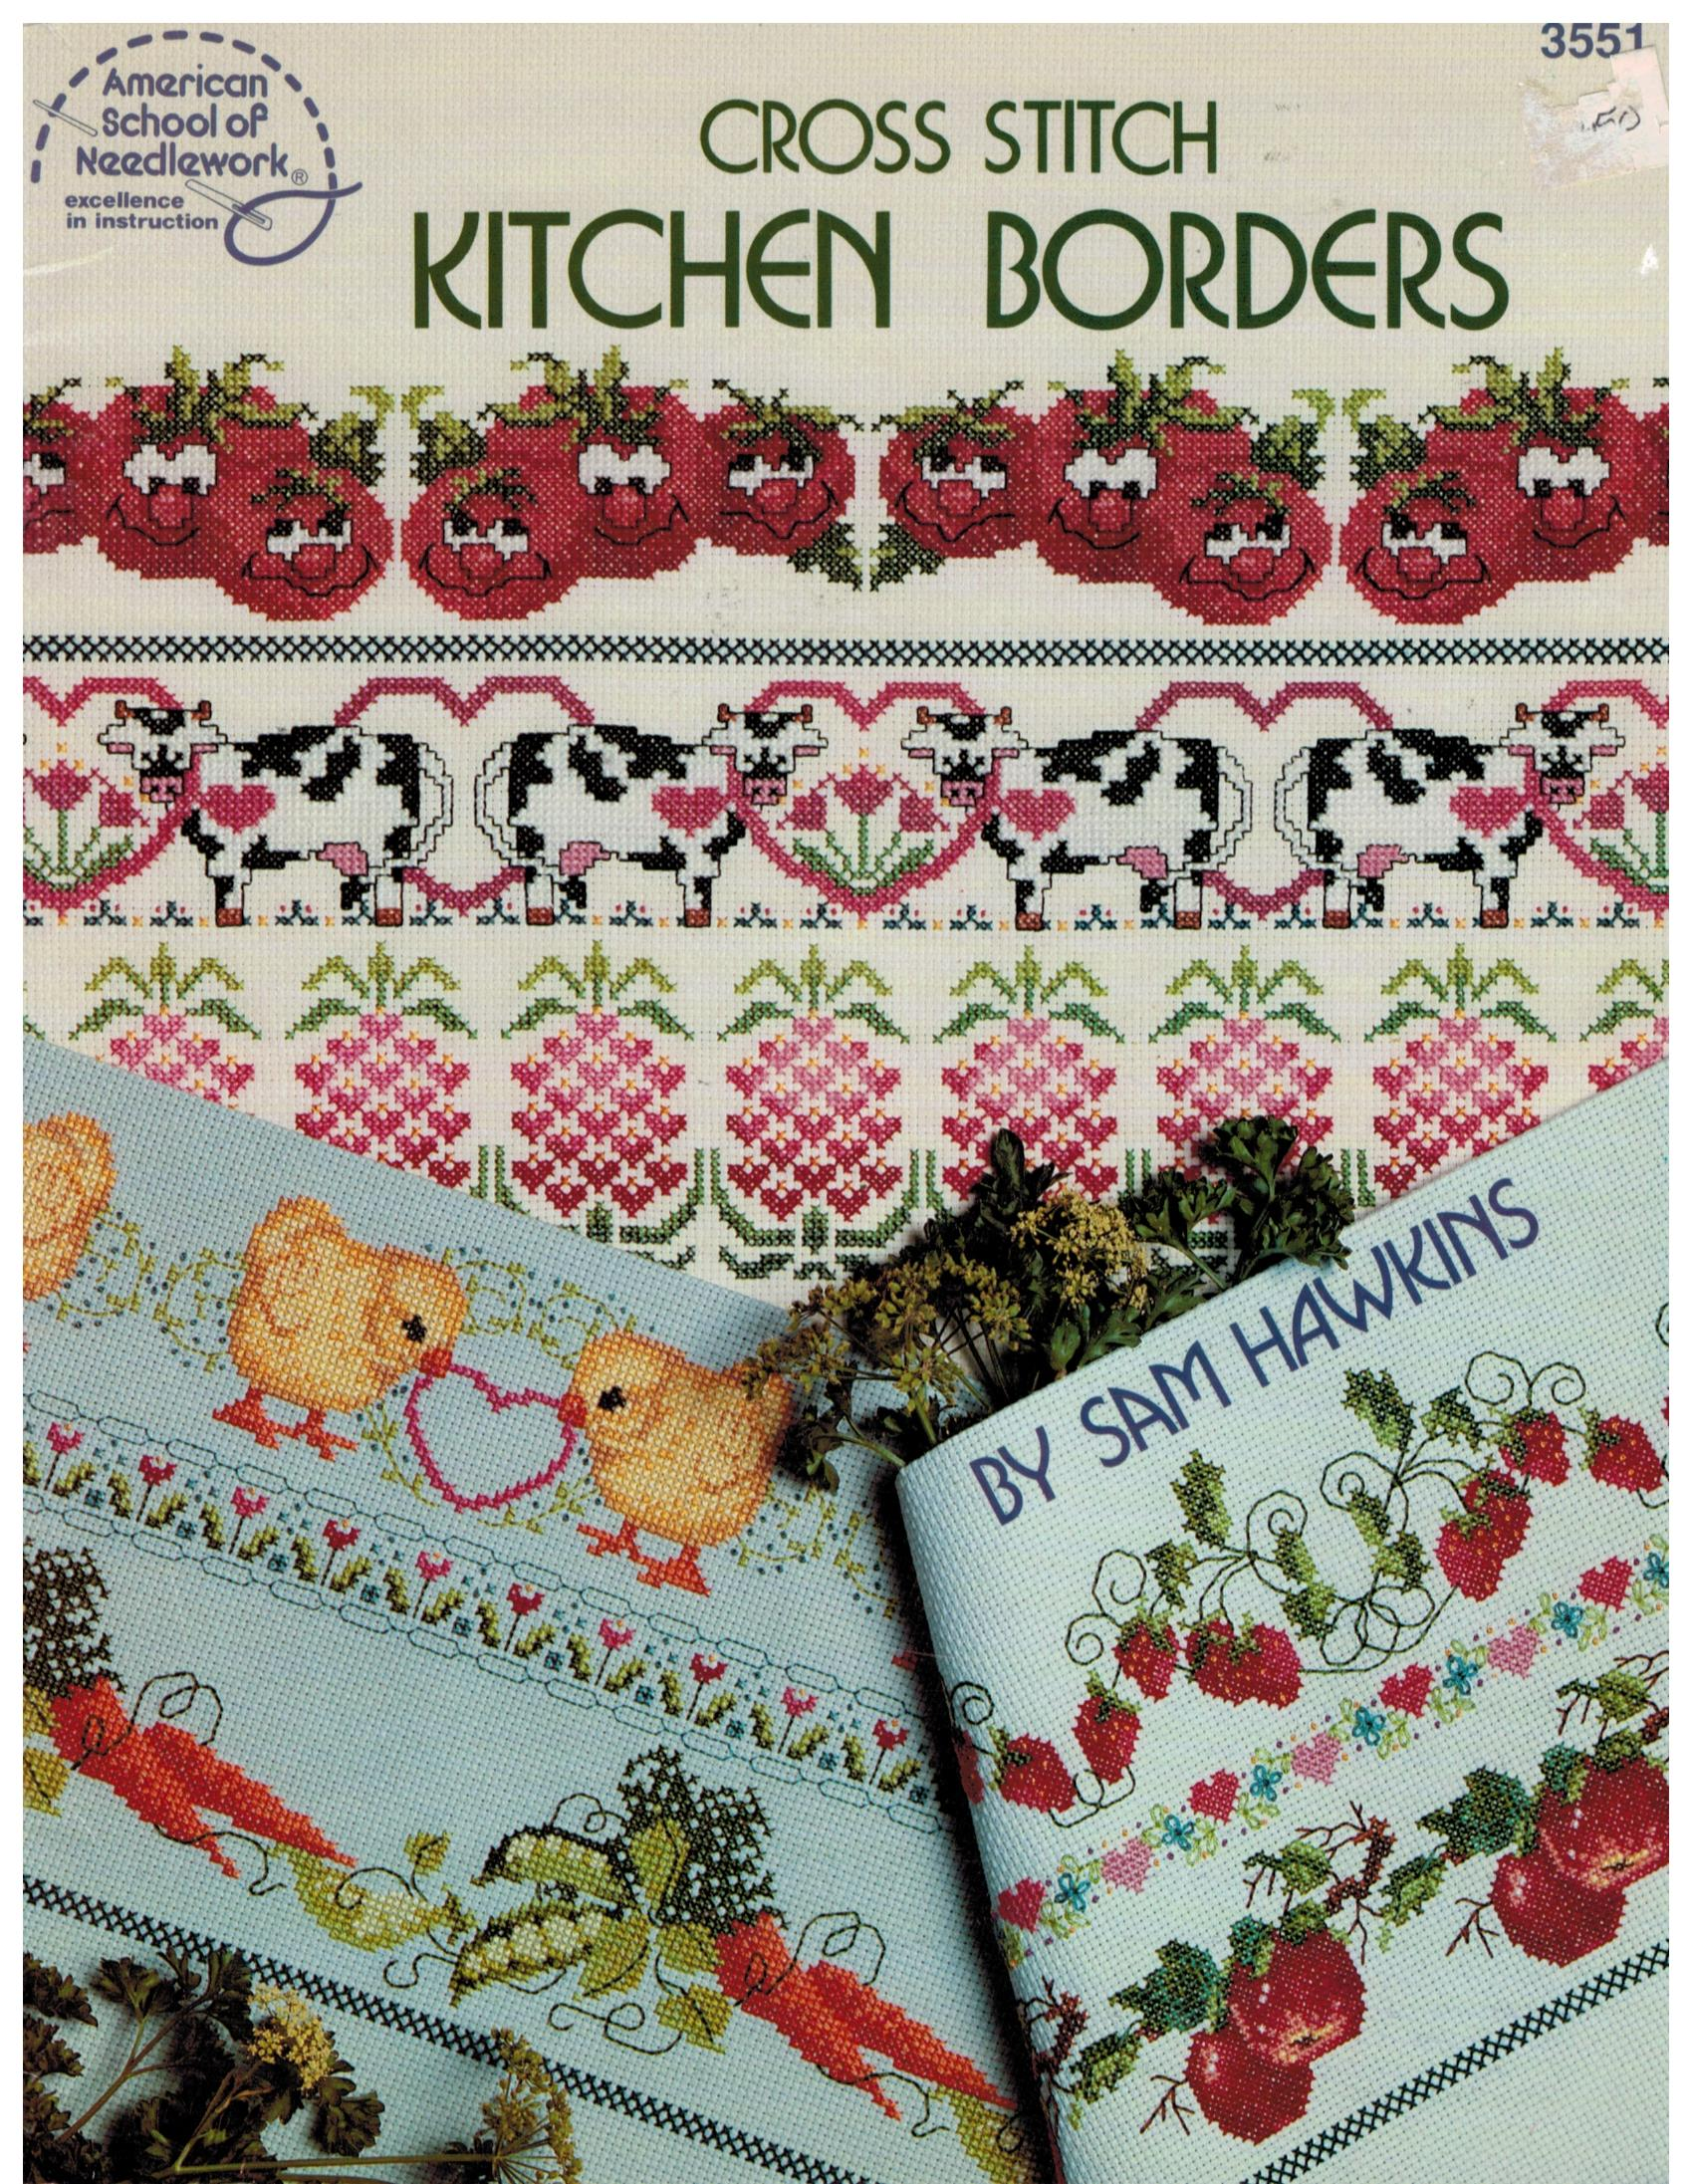 Patterns For Kitchen Curtains Cross Stitch Kitchen Border Trims For Towels Aprons Curtains And